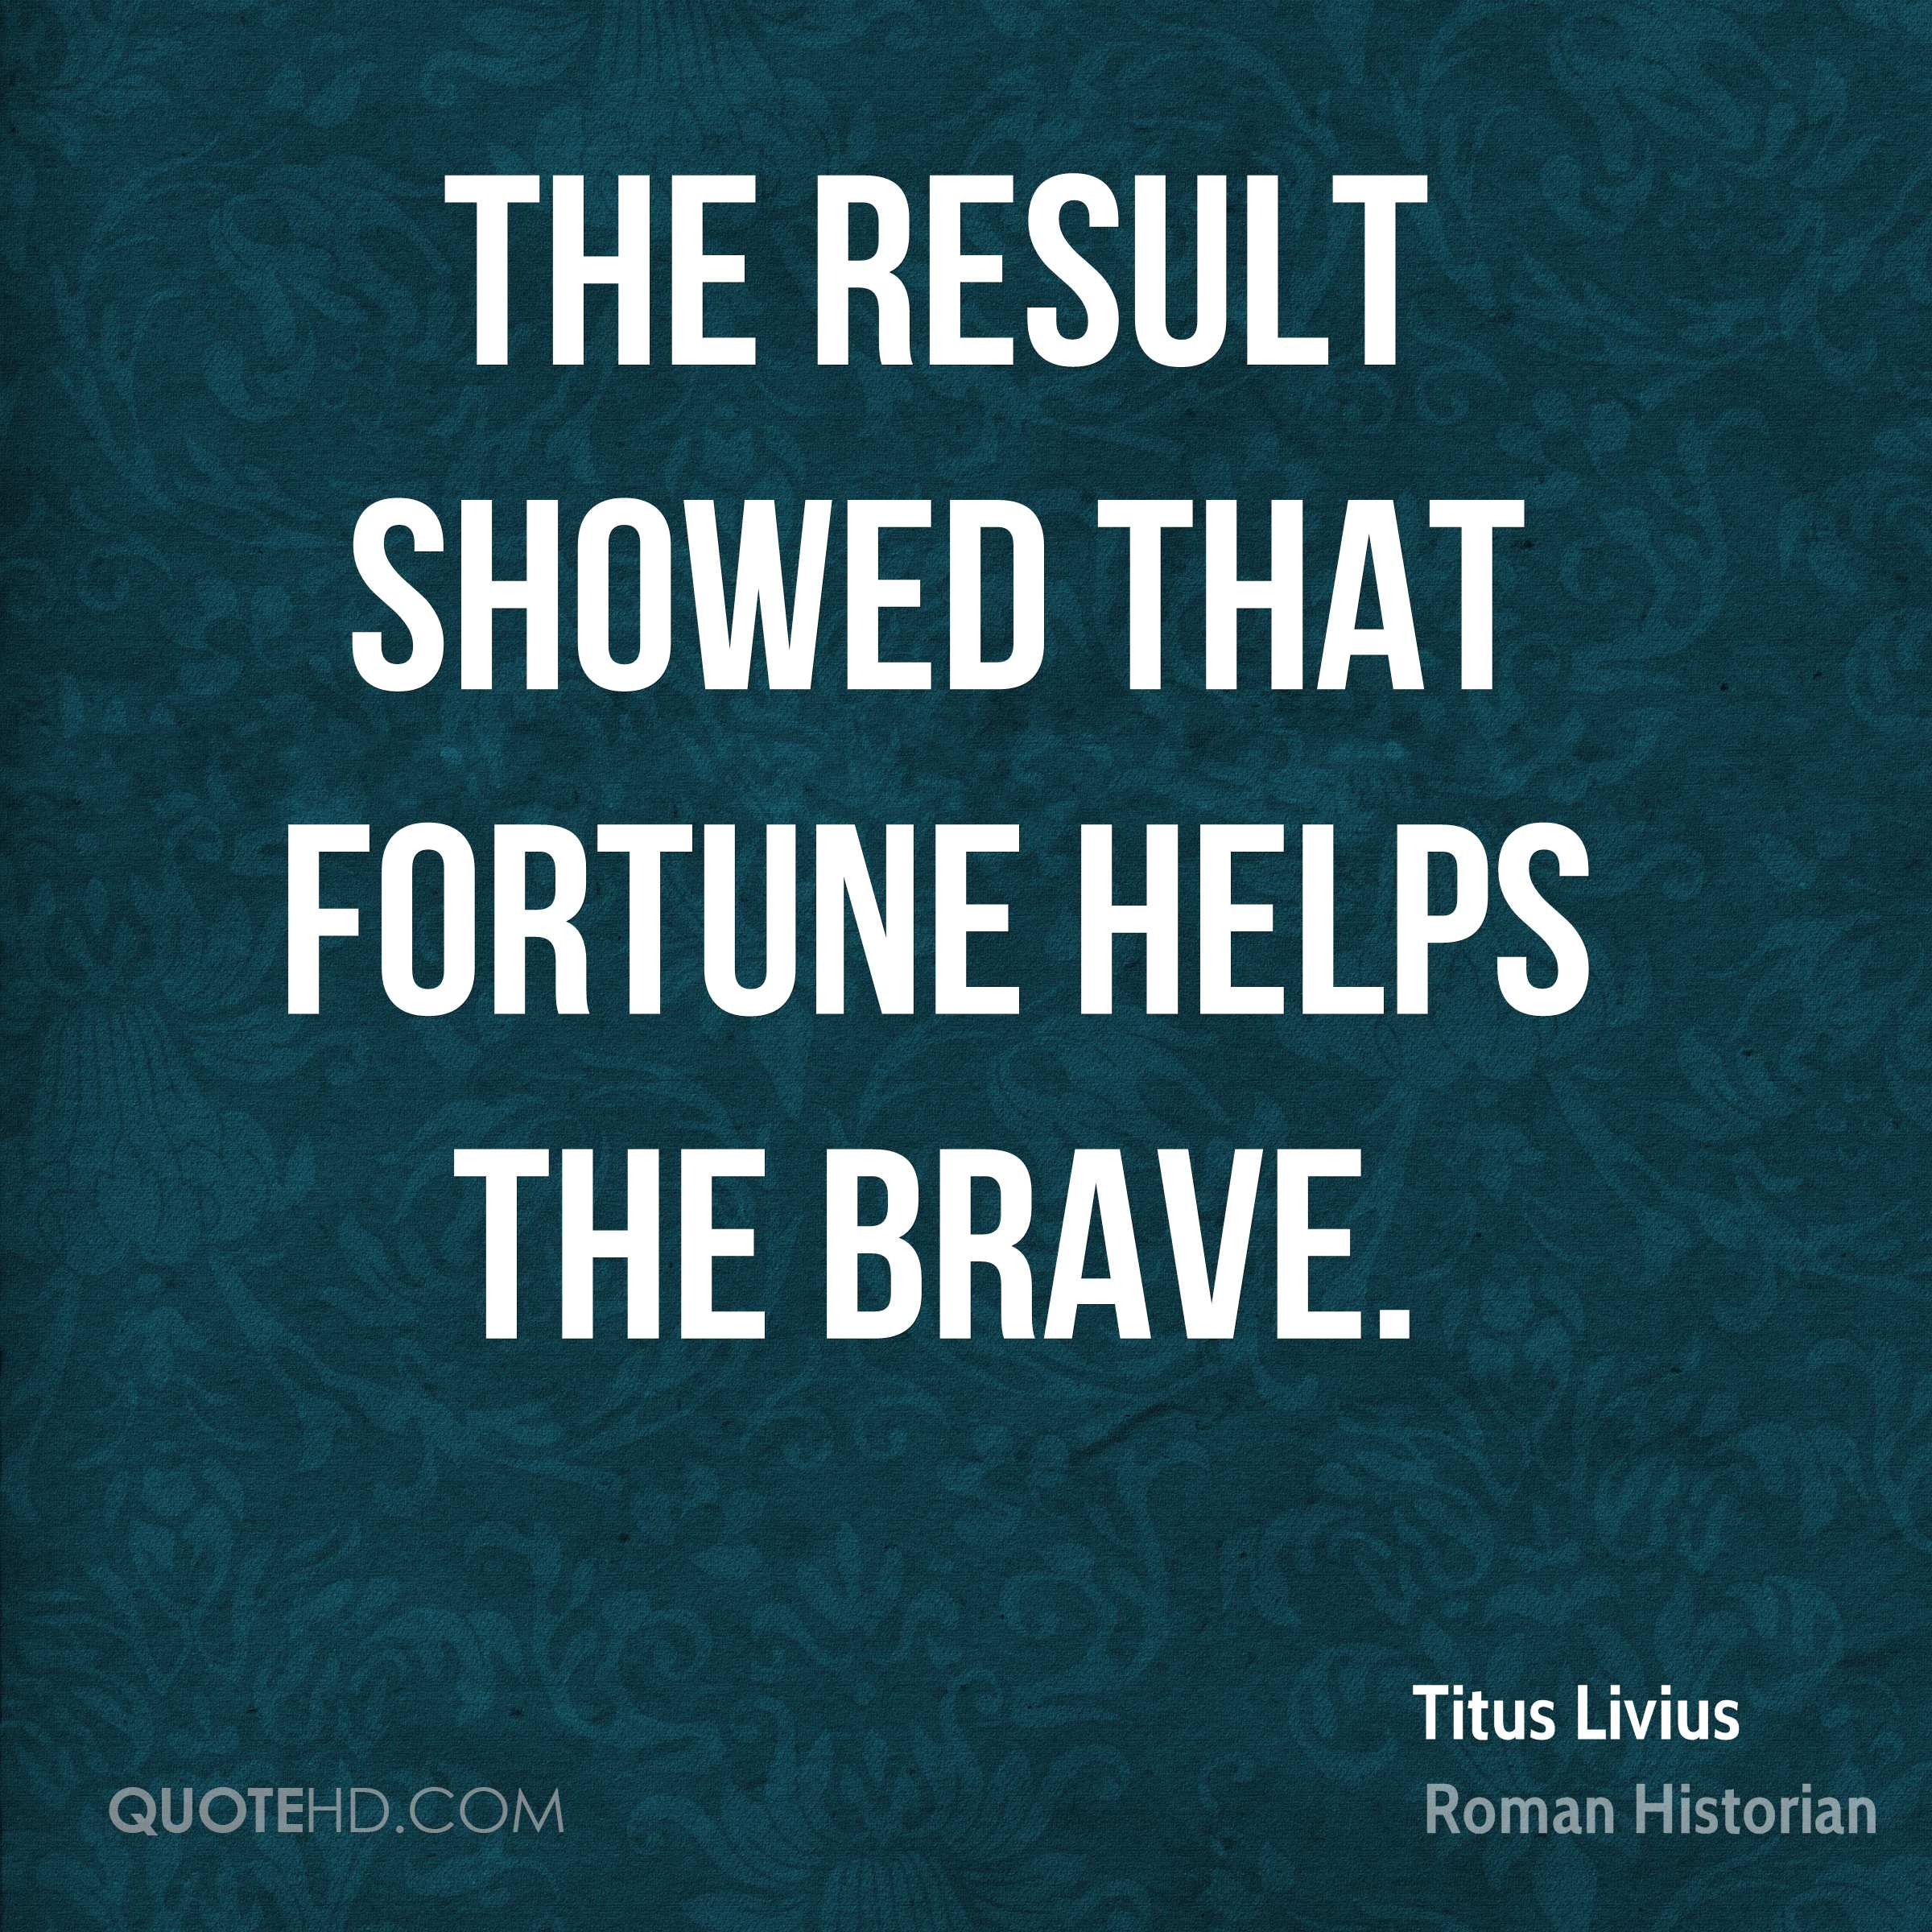 The result showed that fortune helps the brave.